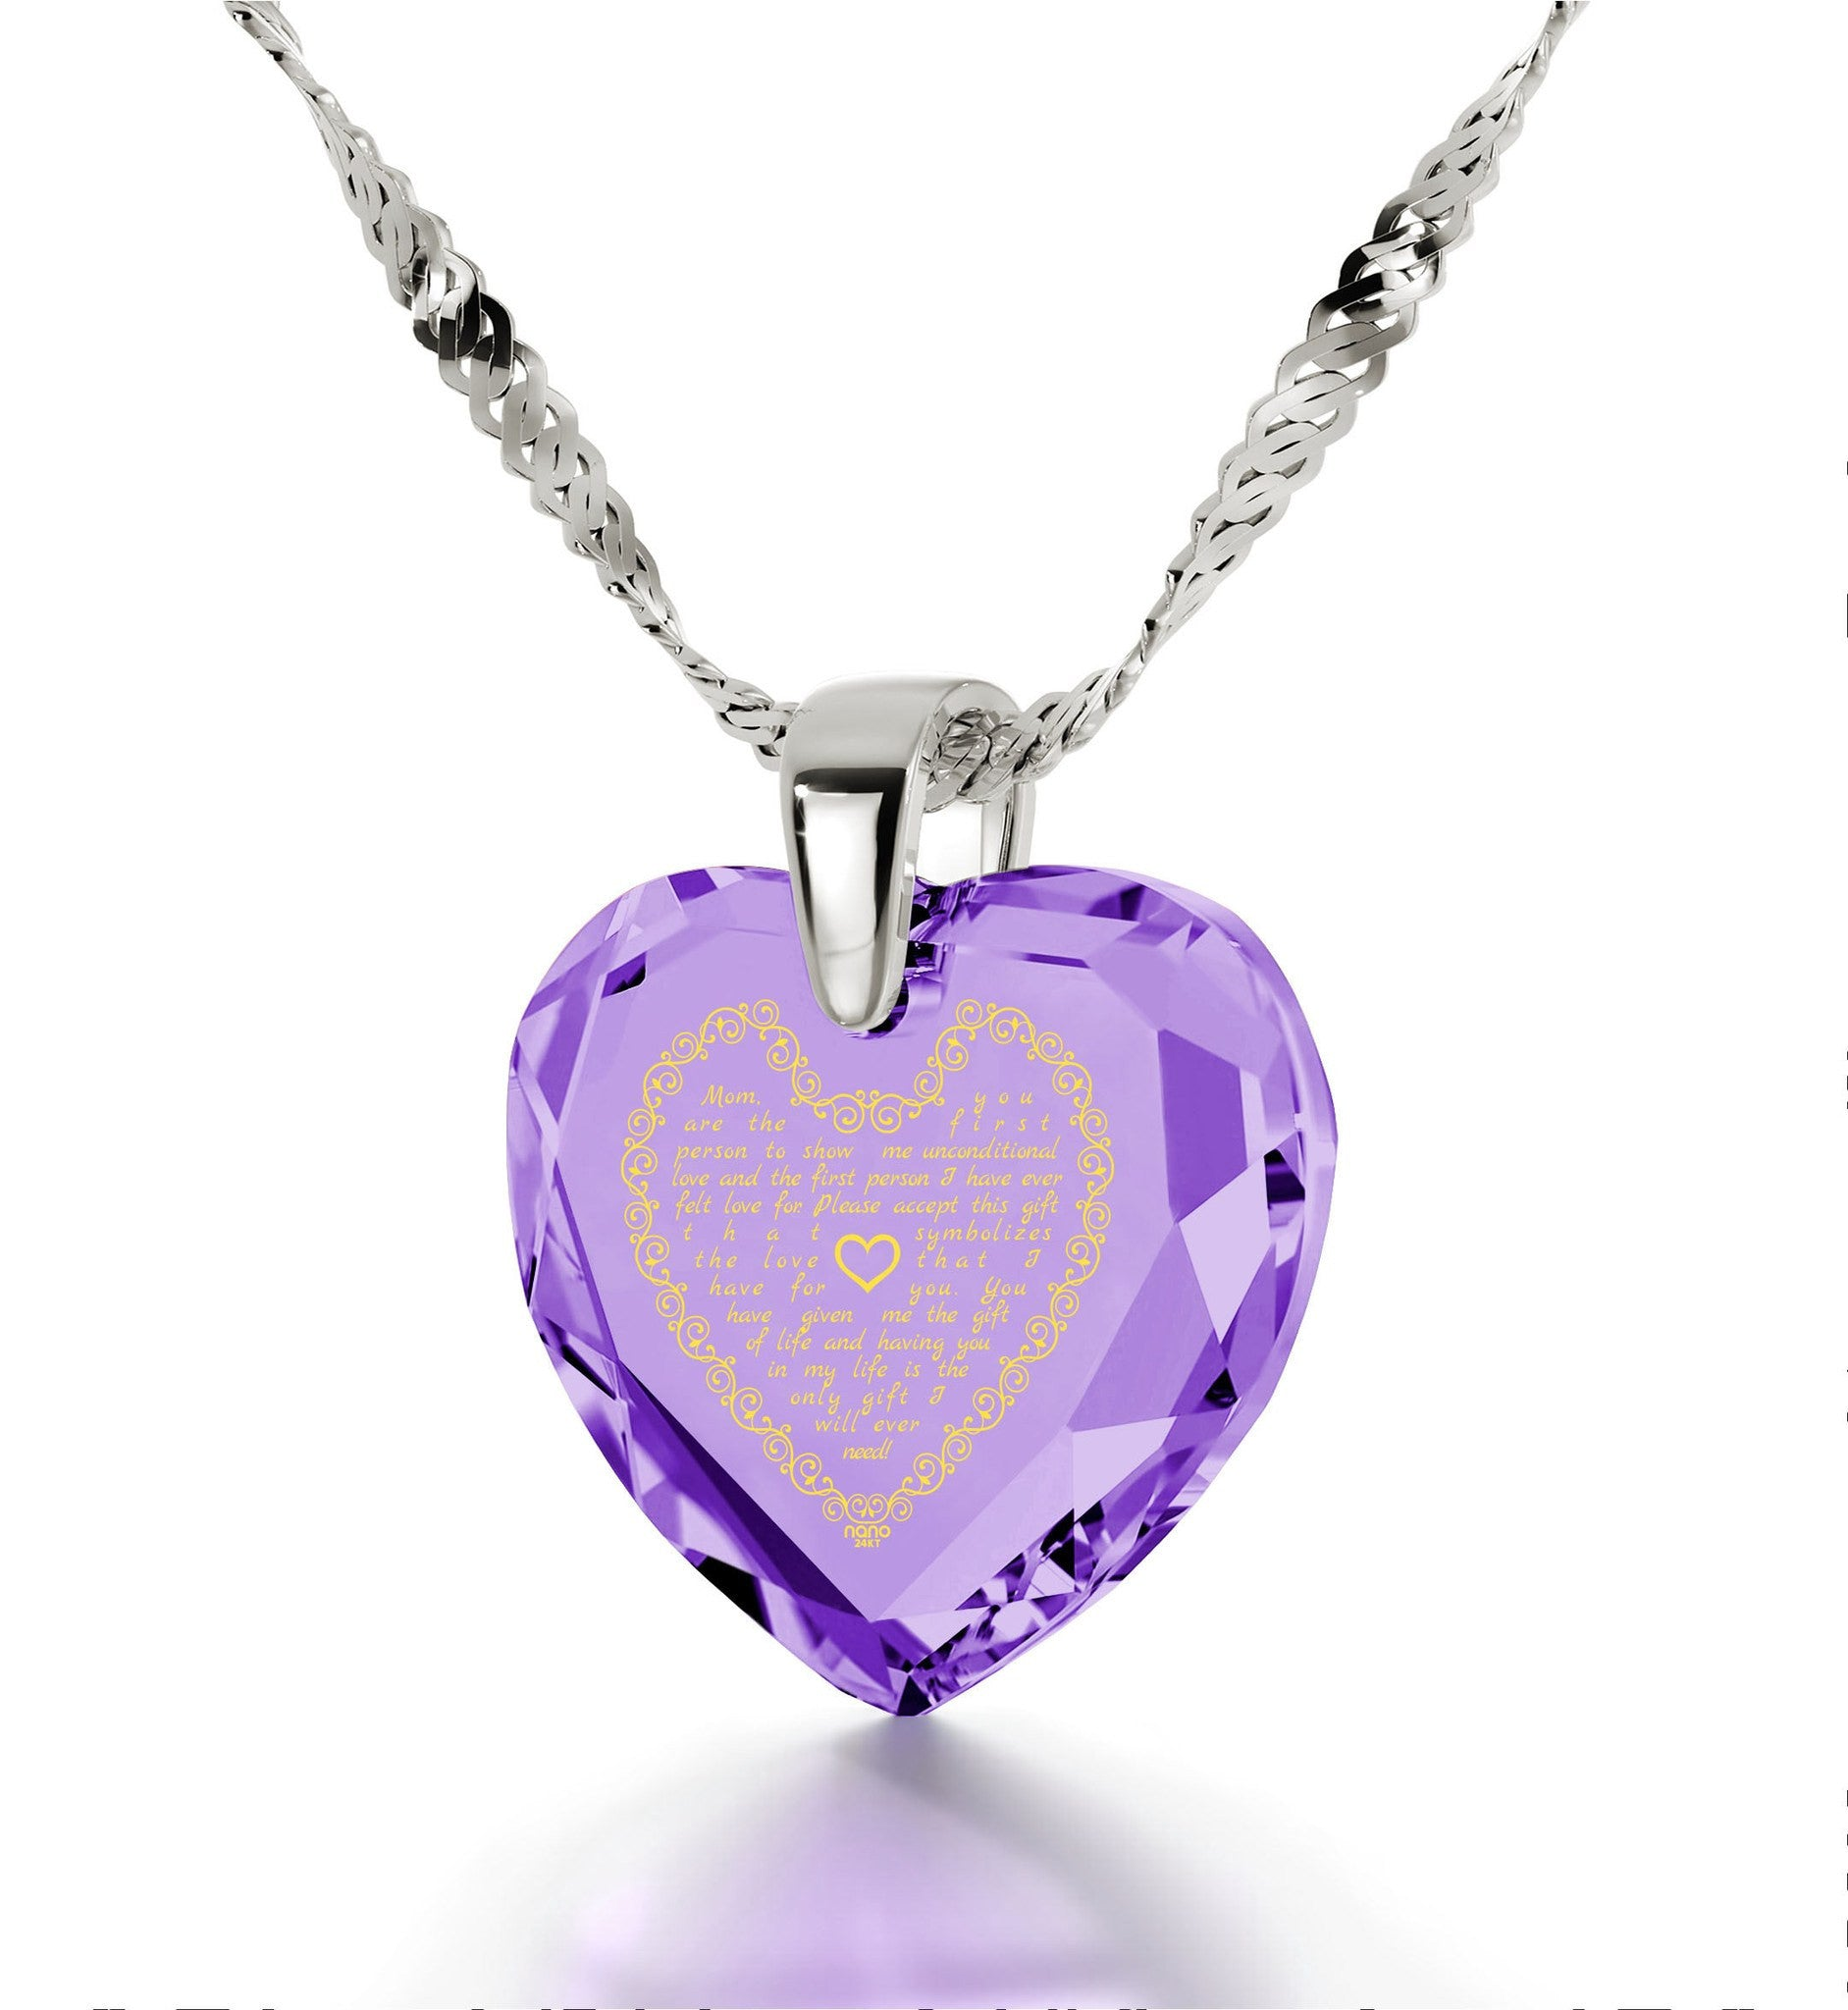 Top Gifts for Mom, Mother's Day Jewelry, Purple Necklace, Engraved in 24k Gold, by Nano